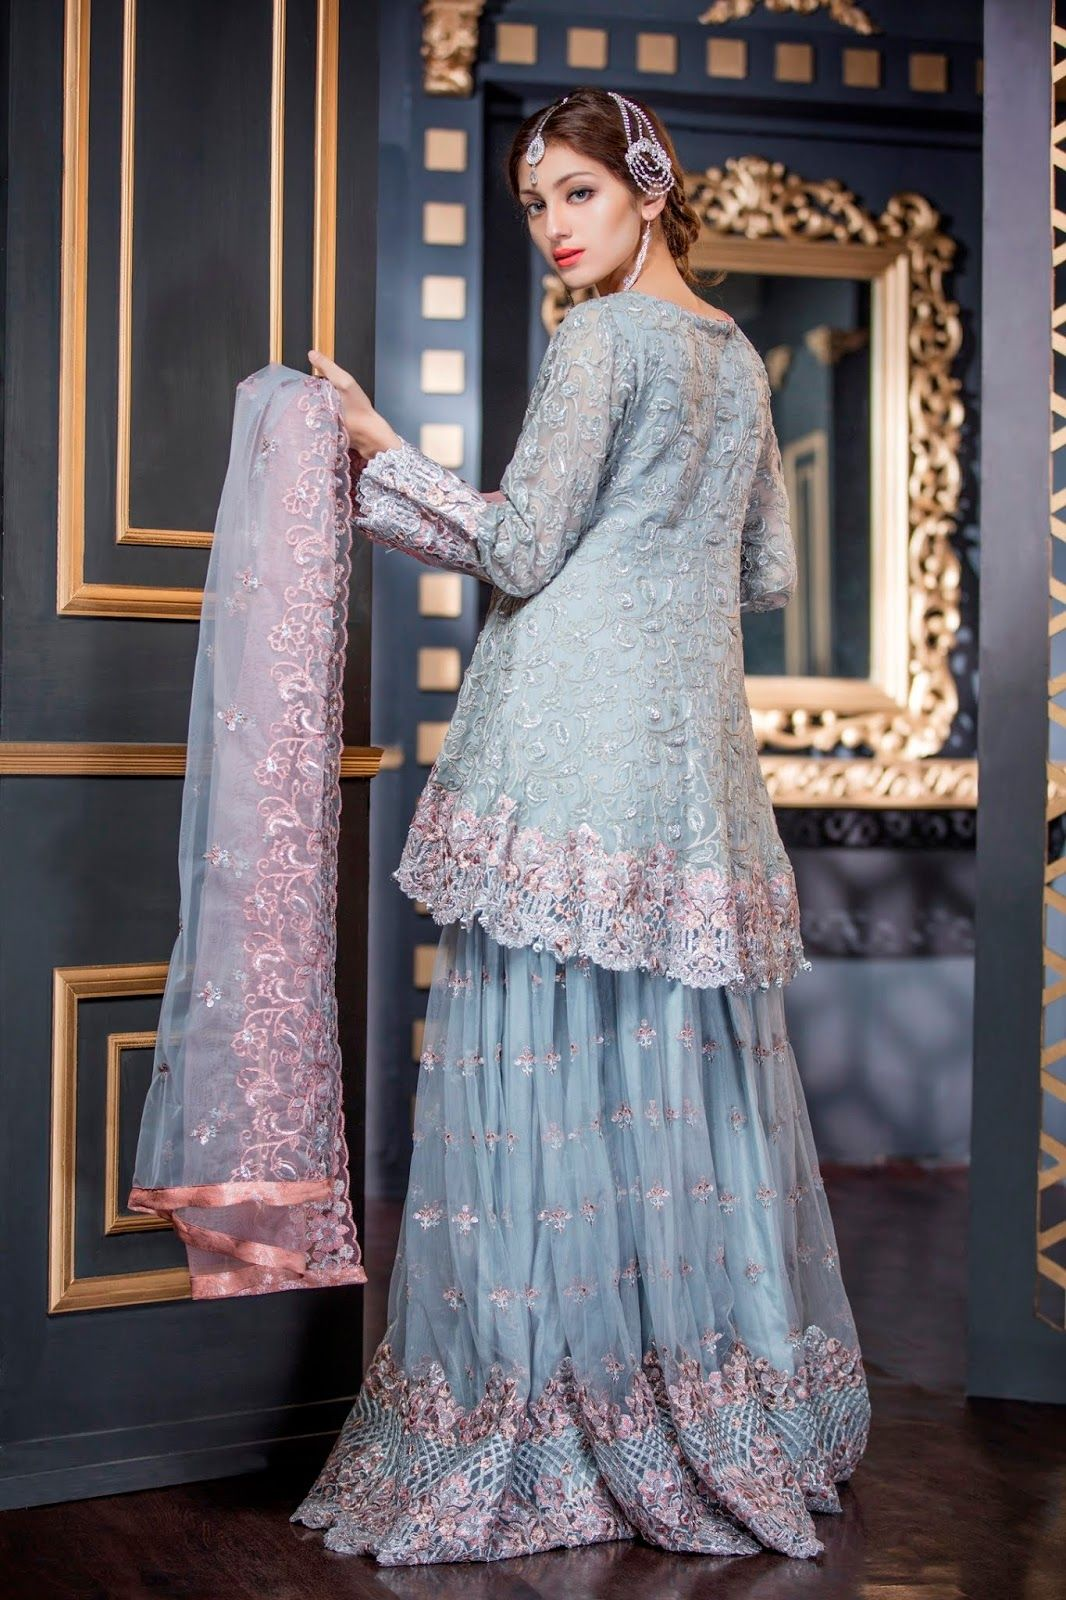 a35a444a3b Maryam n Maria Freesia Chiffon 2018 Volume 2 Collection SILVER STONE  (FMM-210) with model Neha Rajpoot